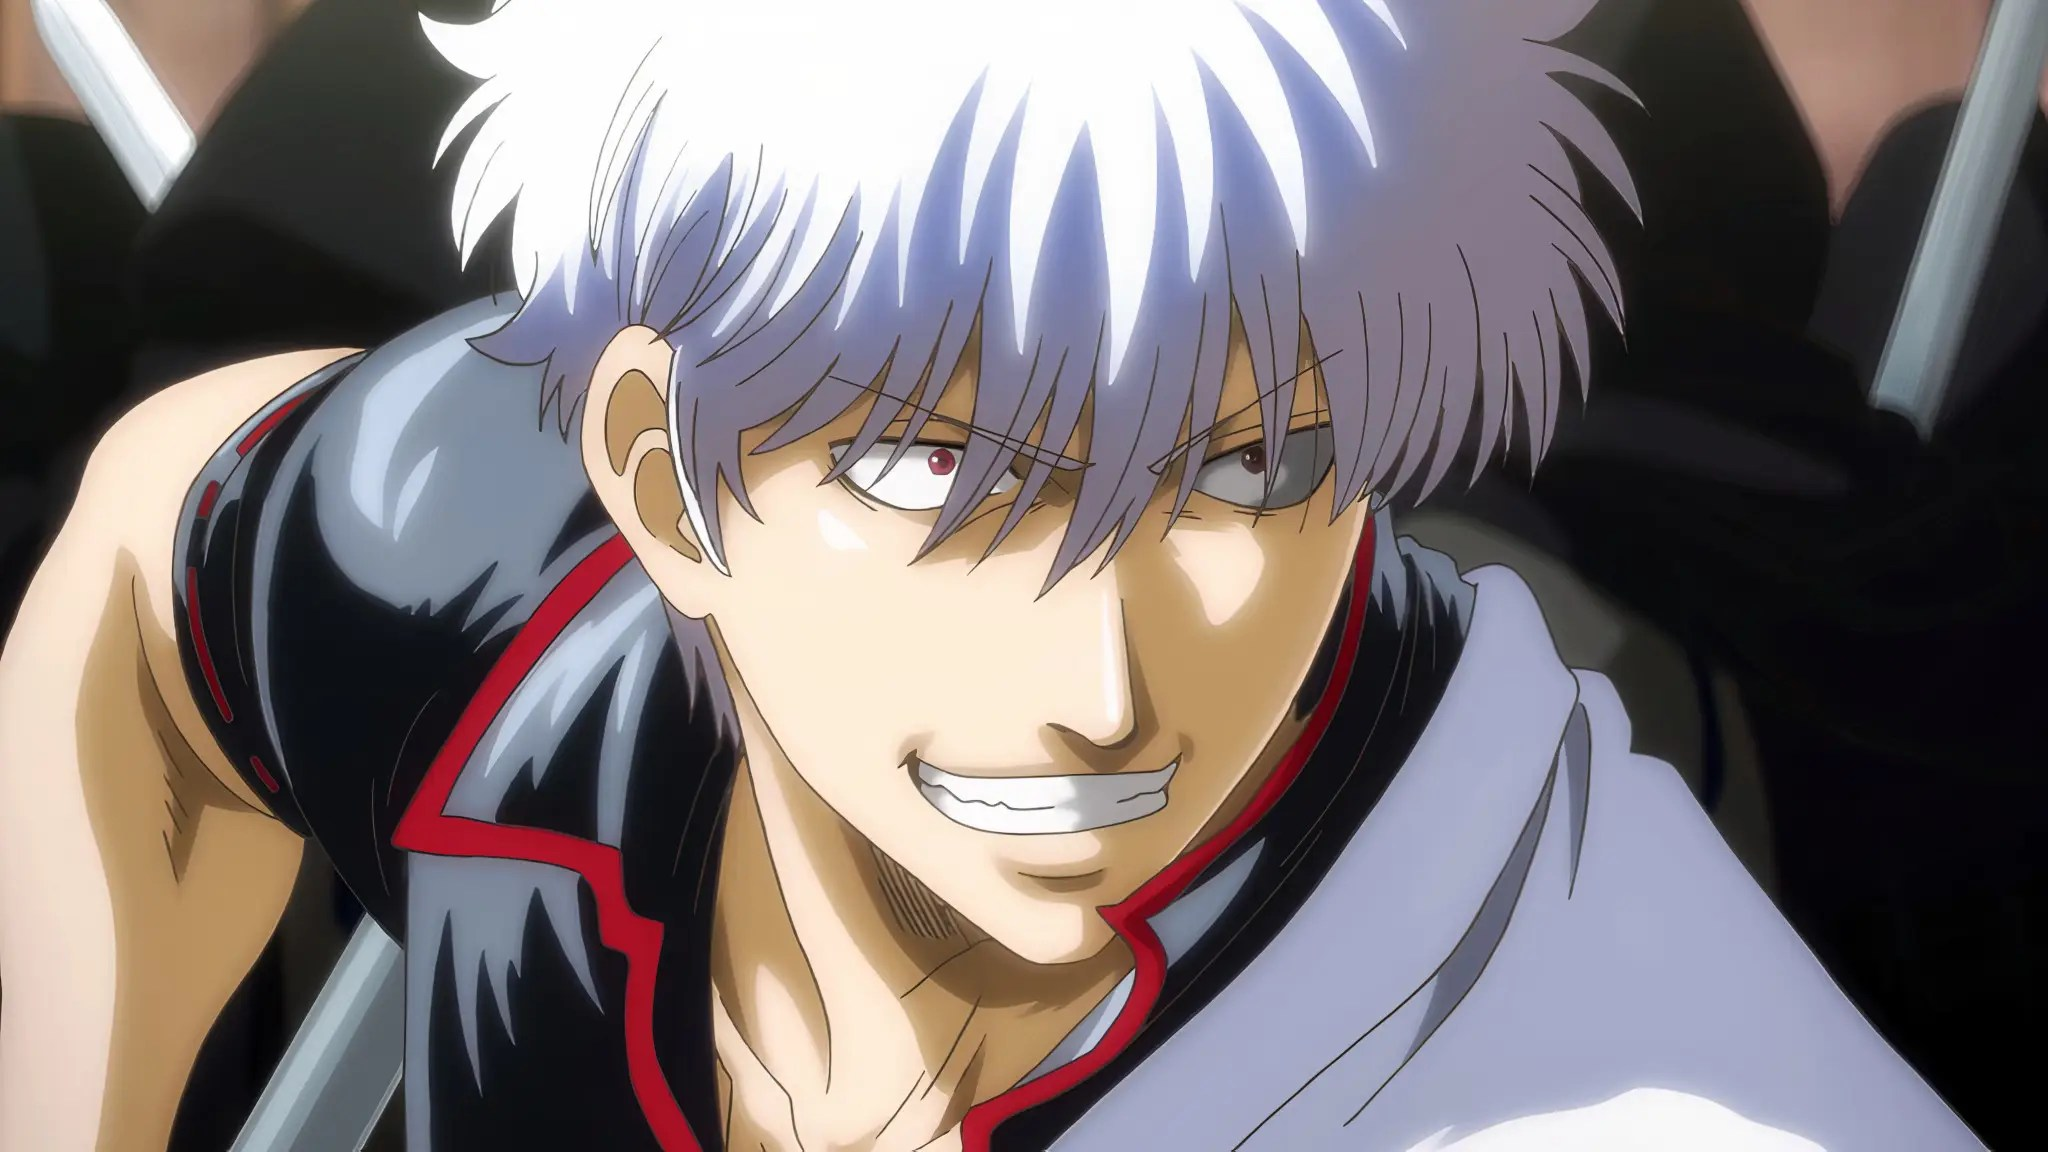 Annonce du film Gintama The Final en Trailer 2